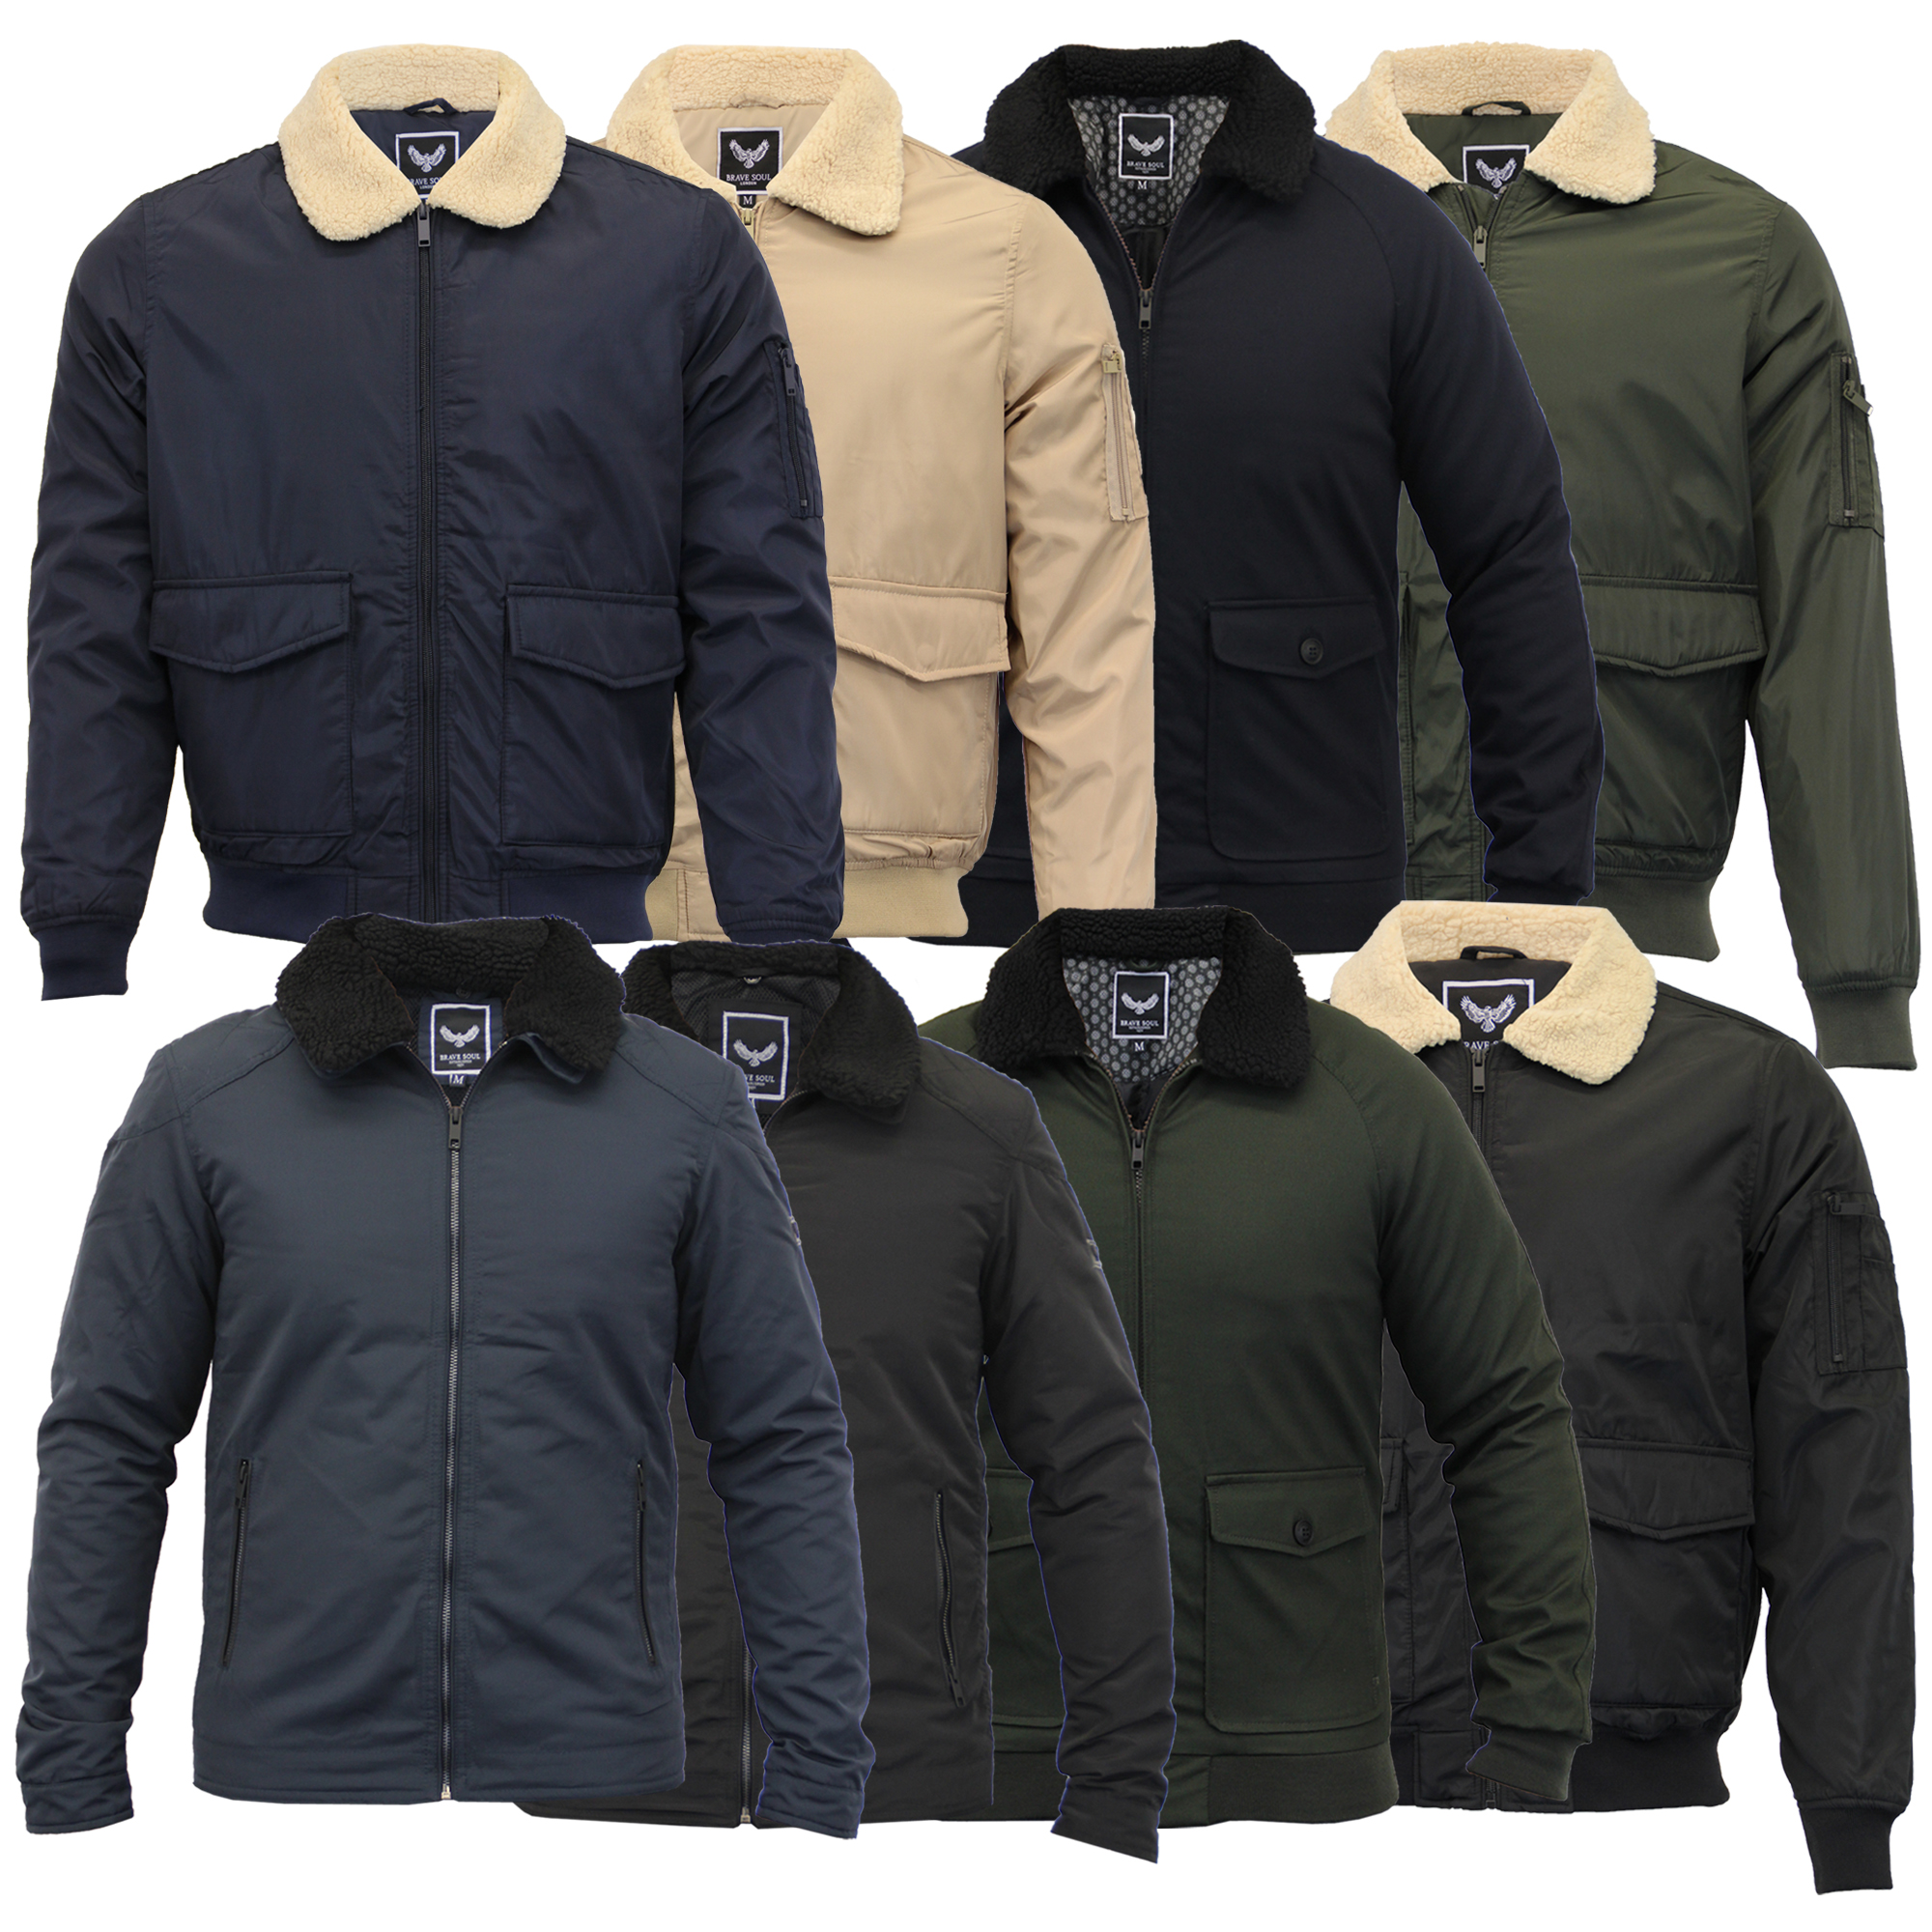 76e3cca4a Details about Mens Flying Jacket Brave Soul Coat Sherpa Fleece Collar  Padded Bomber Winter New